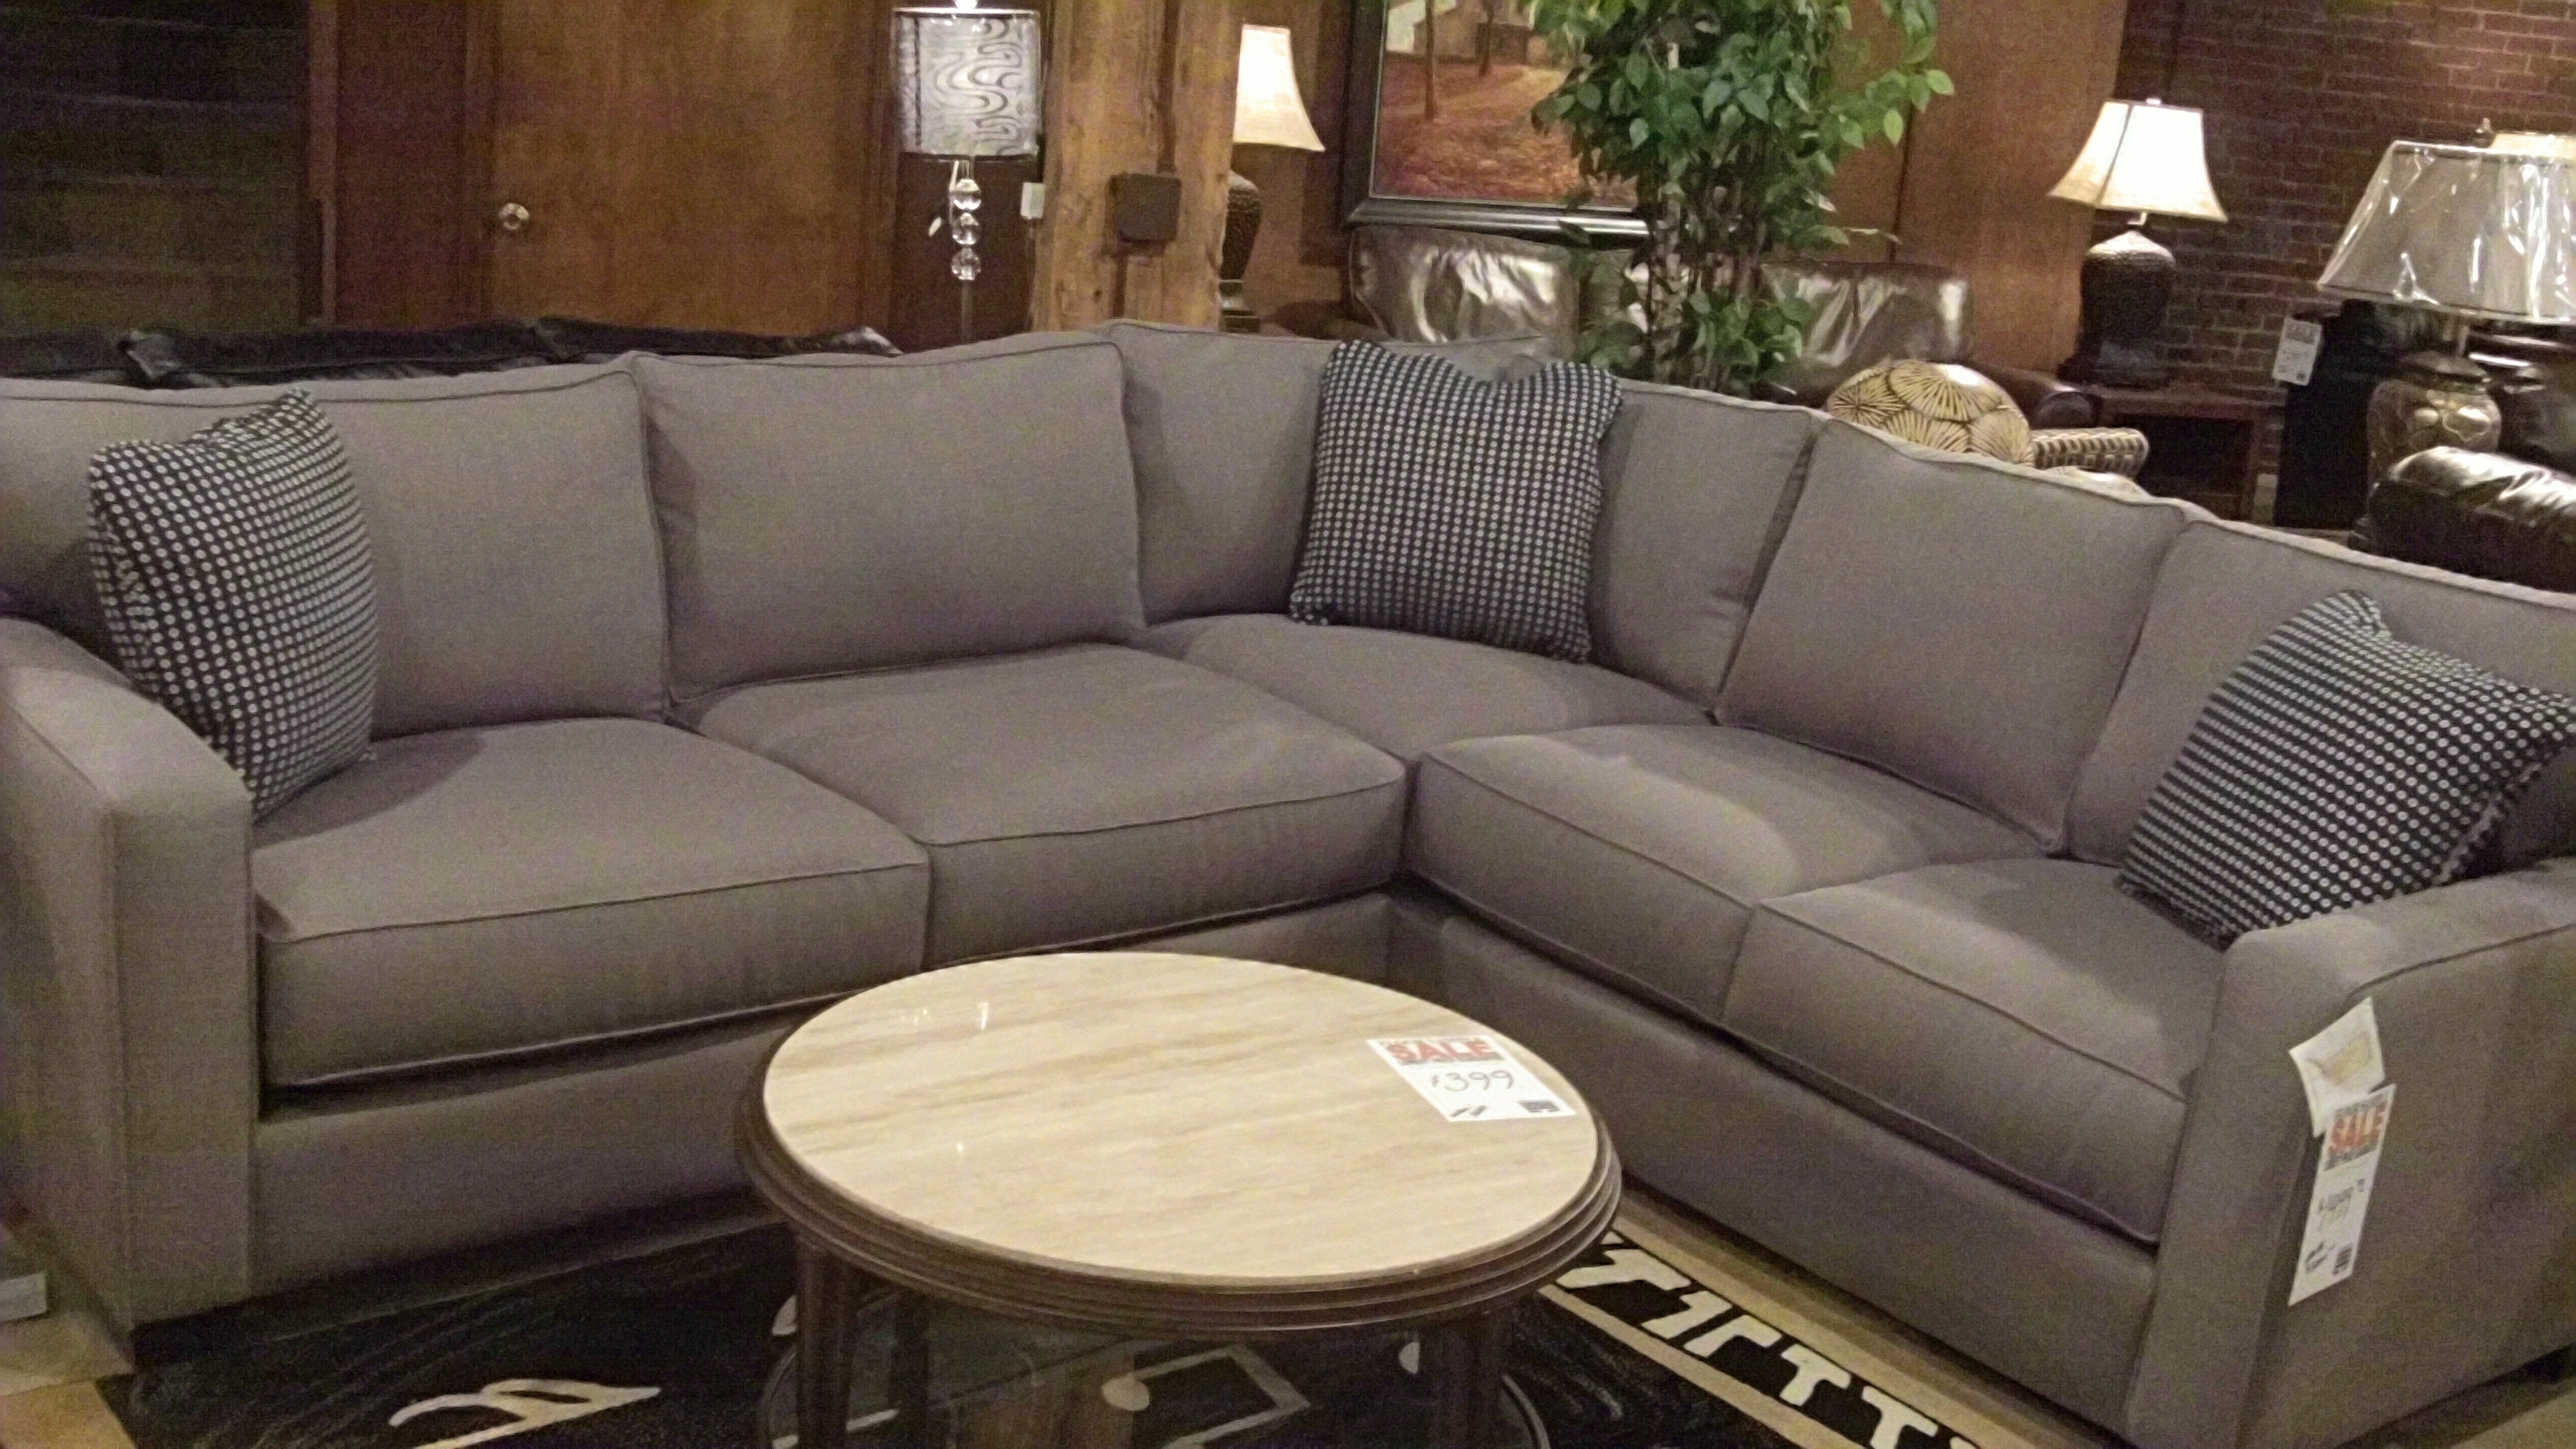 Sectional Sofas St Louis – Hotelsbacau In St Louis Sectional Sofas (Image 1 of 10)